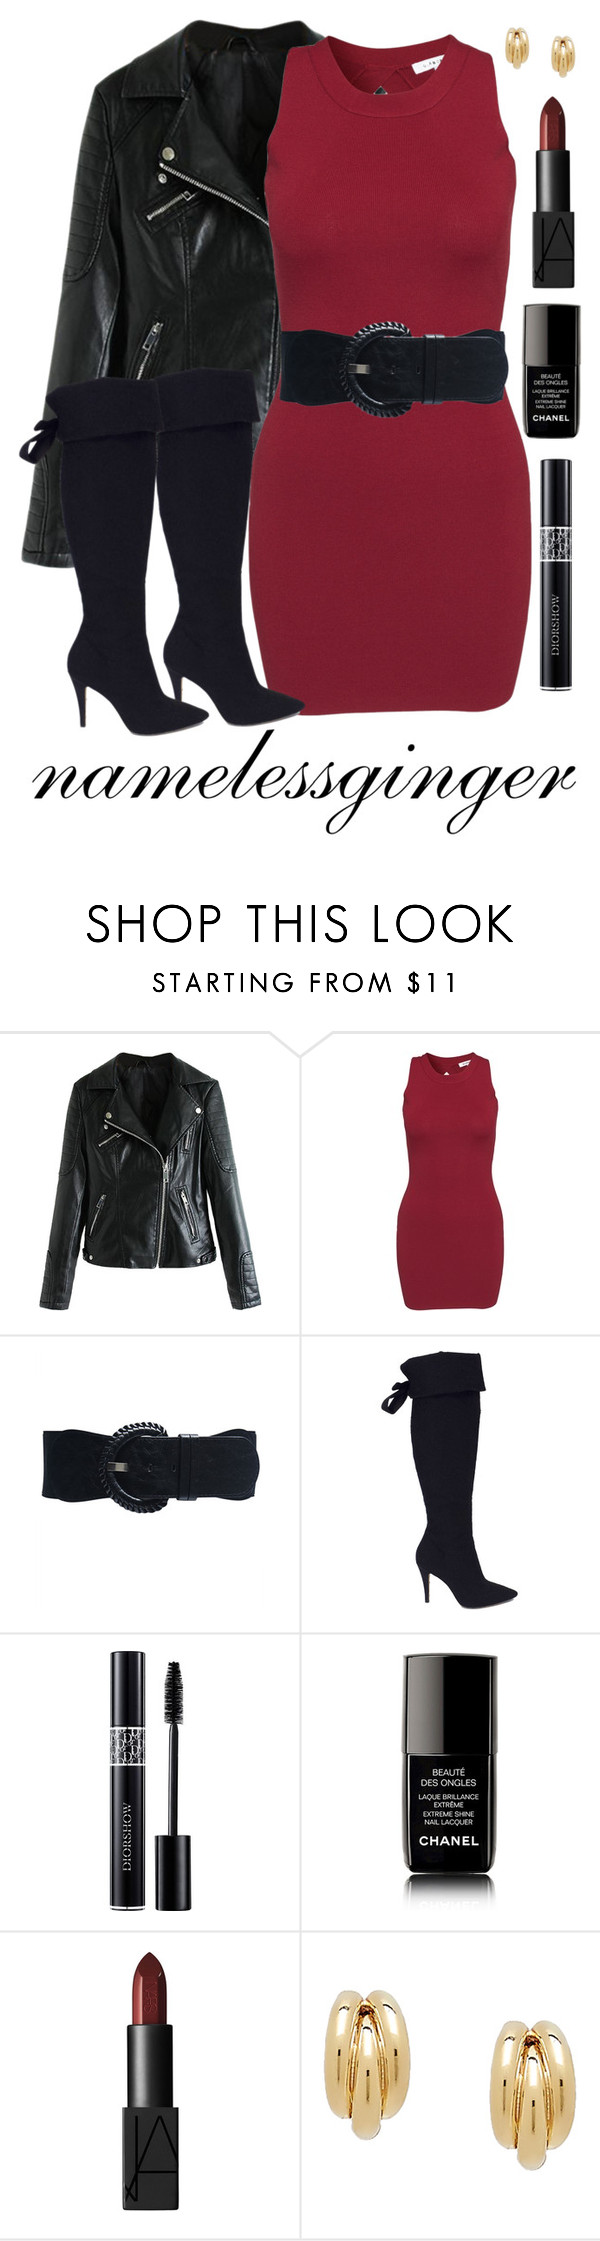 """untitled #62"" by namelessginger ❤ liked on Polyvore featuring Glamorous, Wet Seal, Via Spiga, Christian Dior, Chanel and NARS Cosmetics"